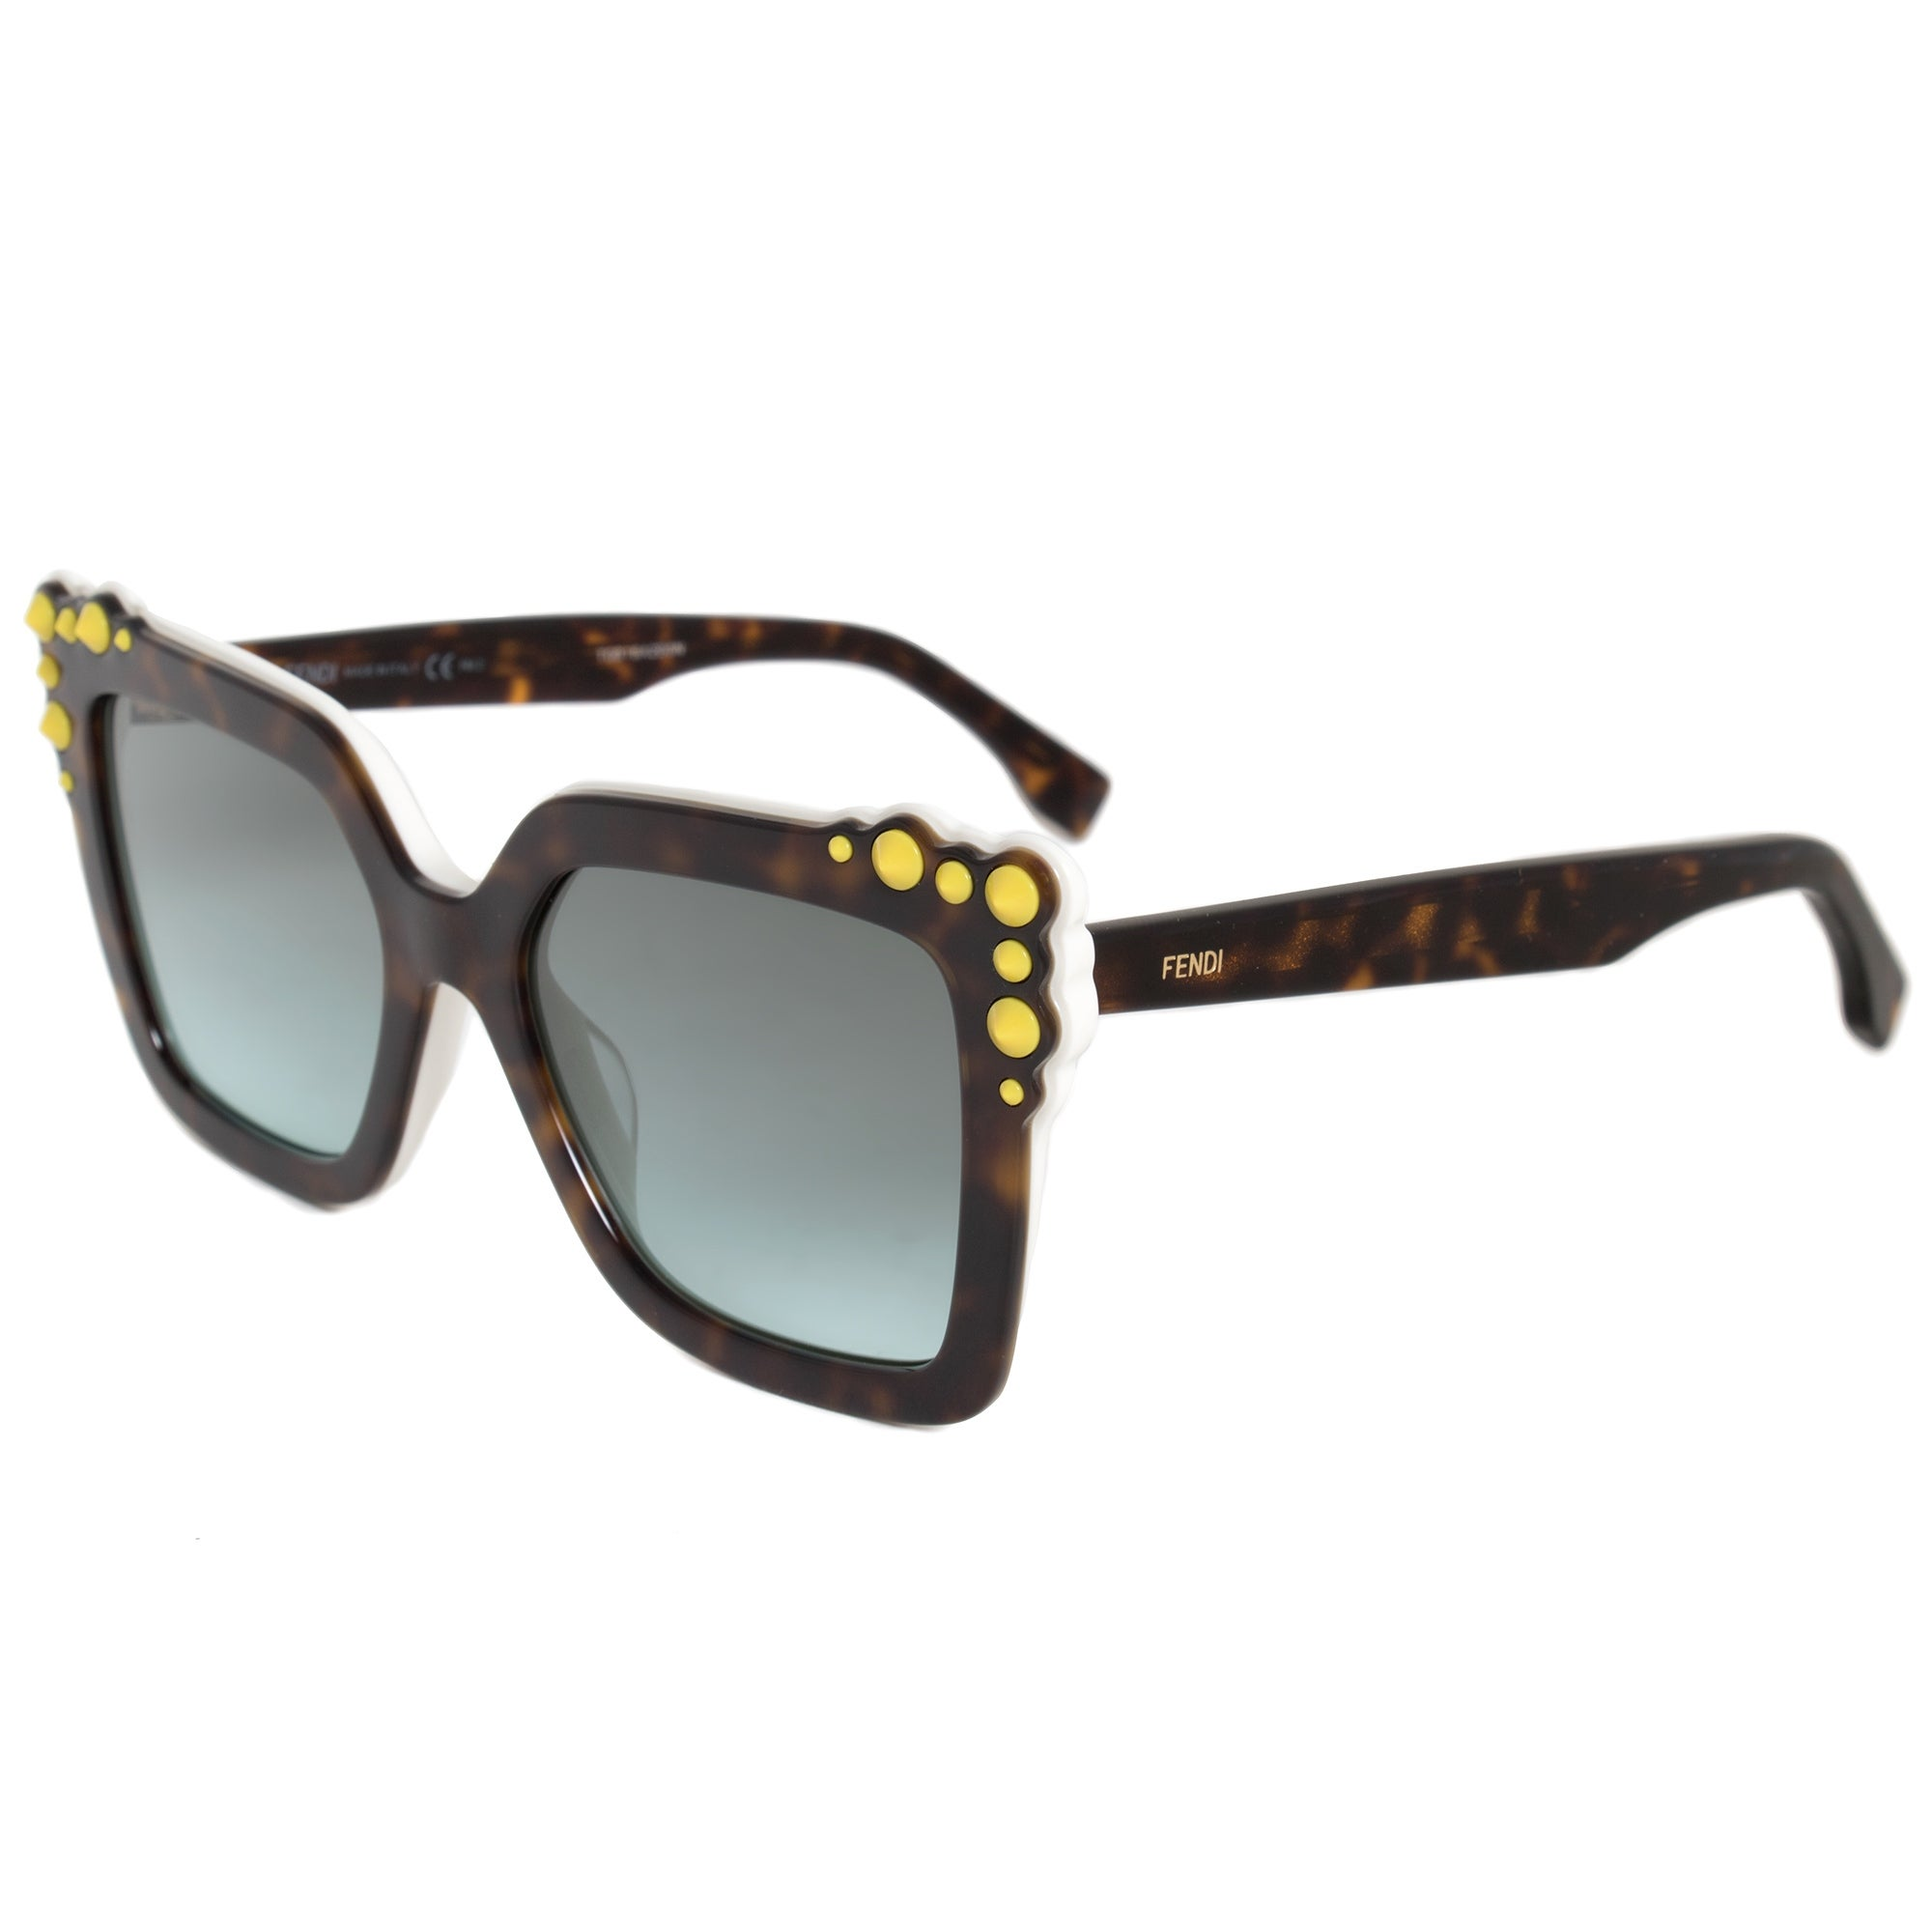 b9662d651d8 Shop Fendi Can Eye Square Sunglasses FF0260S C9K EQ 52 - On Sale - Free  Shipping Today - Overstock - 19623072